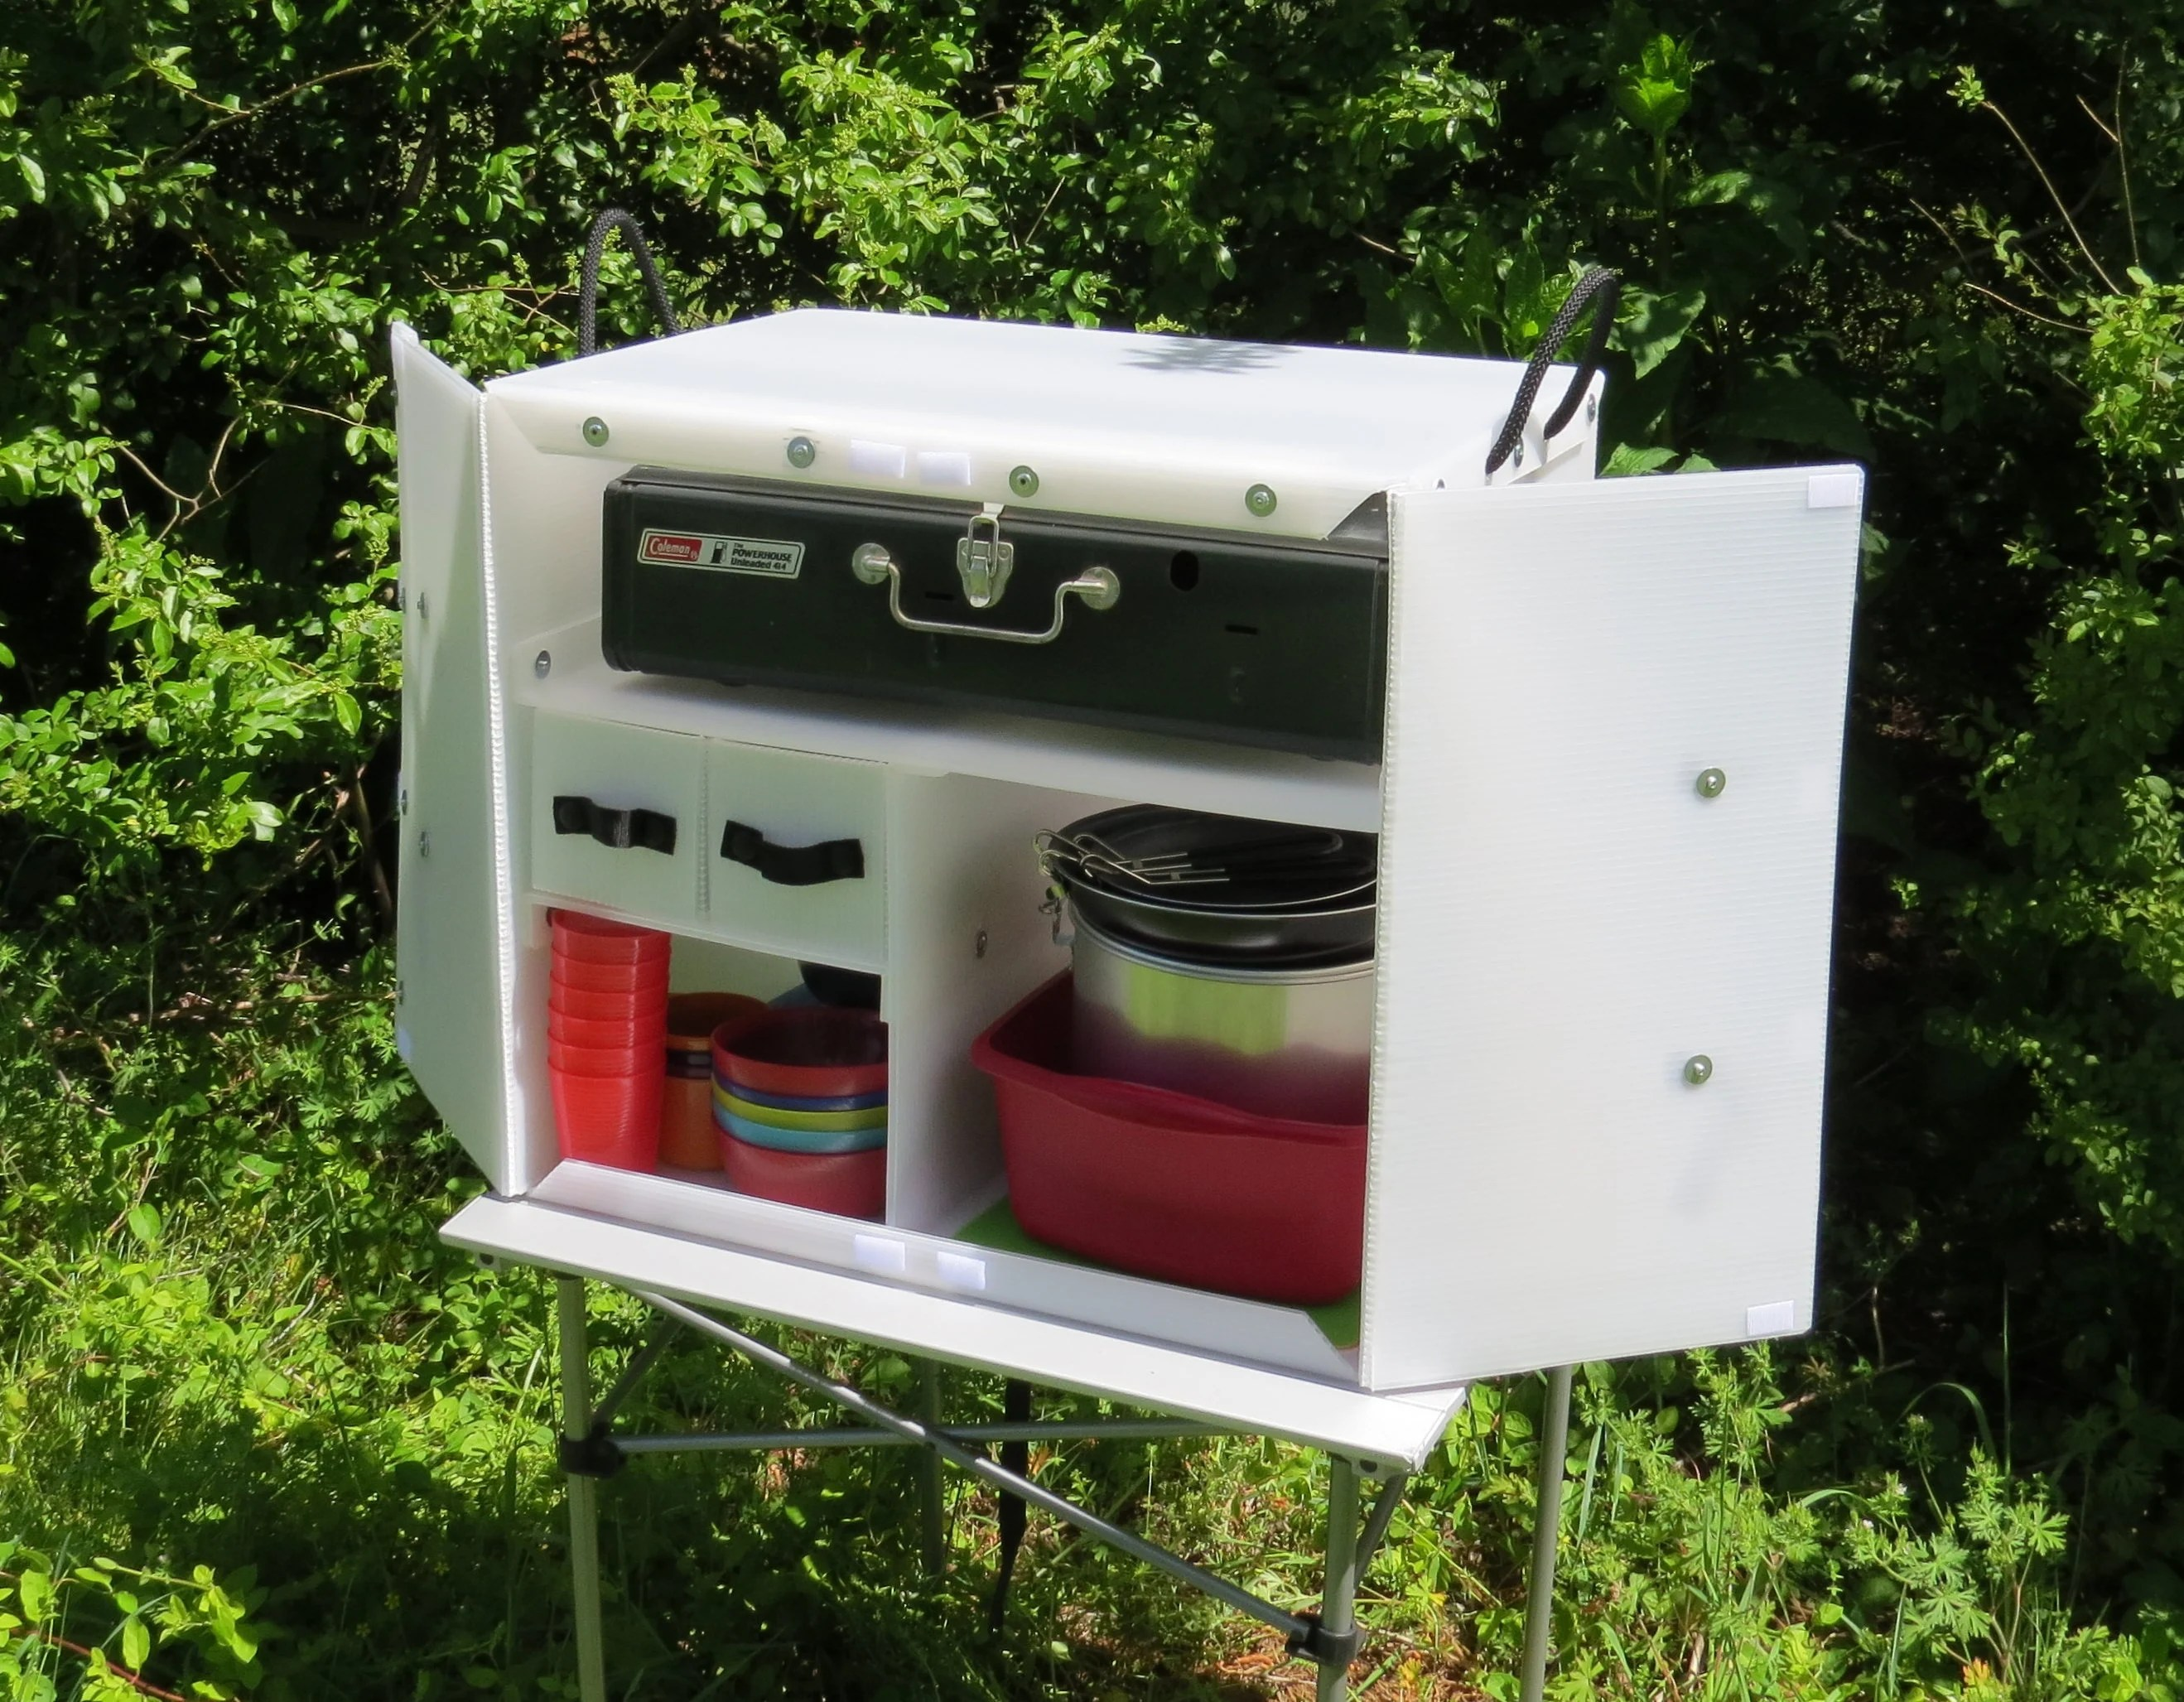 Coleman Outdoor Küche The Camping Kitchen Box 1000 Keep Your Camp Kitchen Organized And Ready For Adventure With This Lightweight Plastic Chuck Box